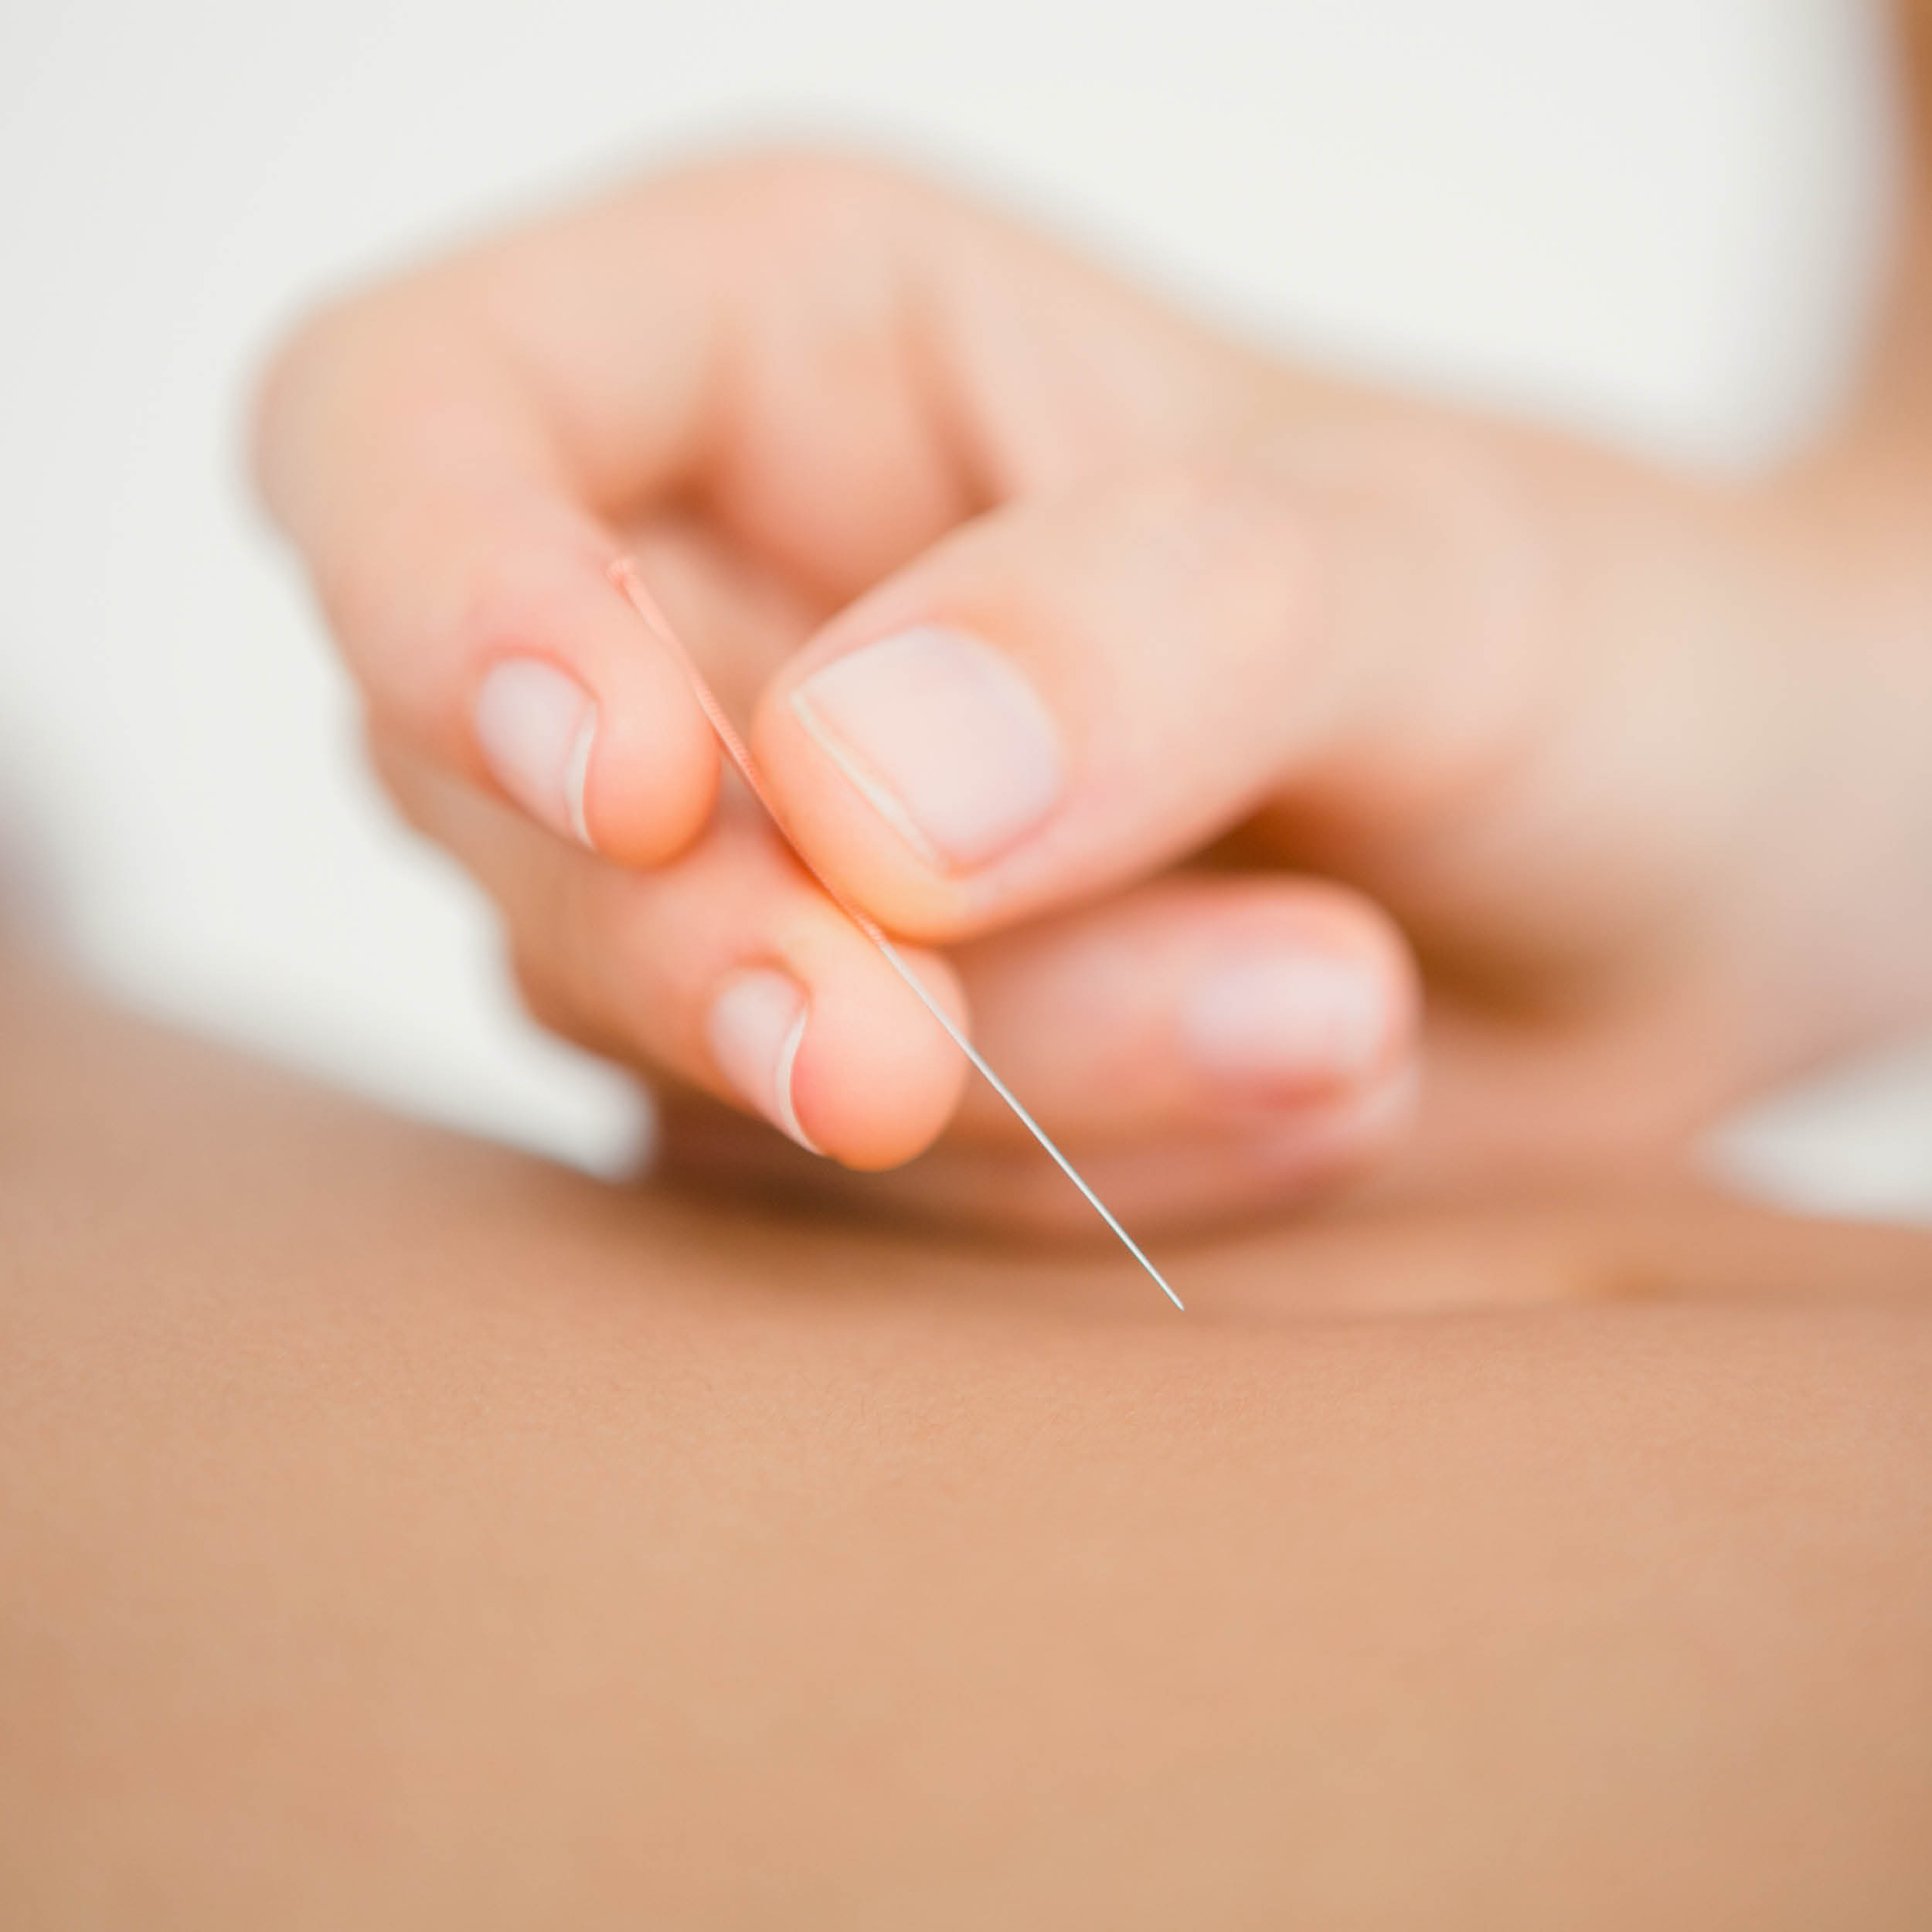 Massagestudio Touch of Health Dry Needling